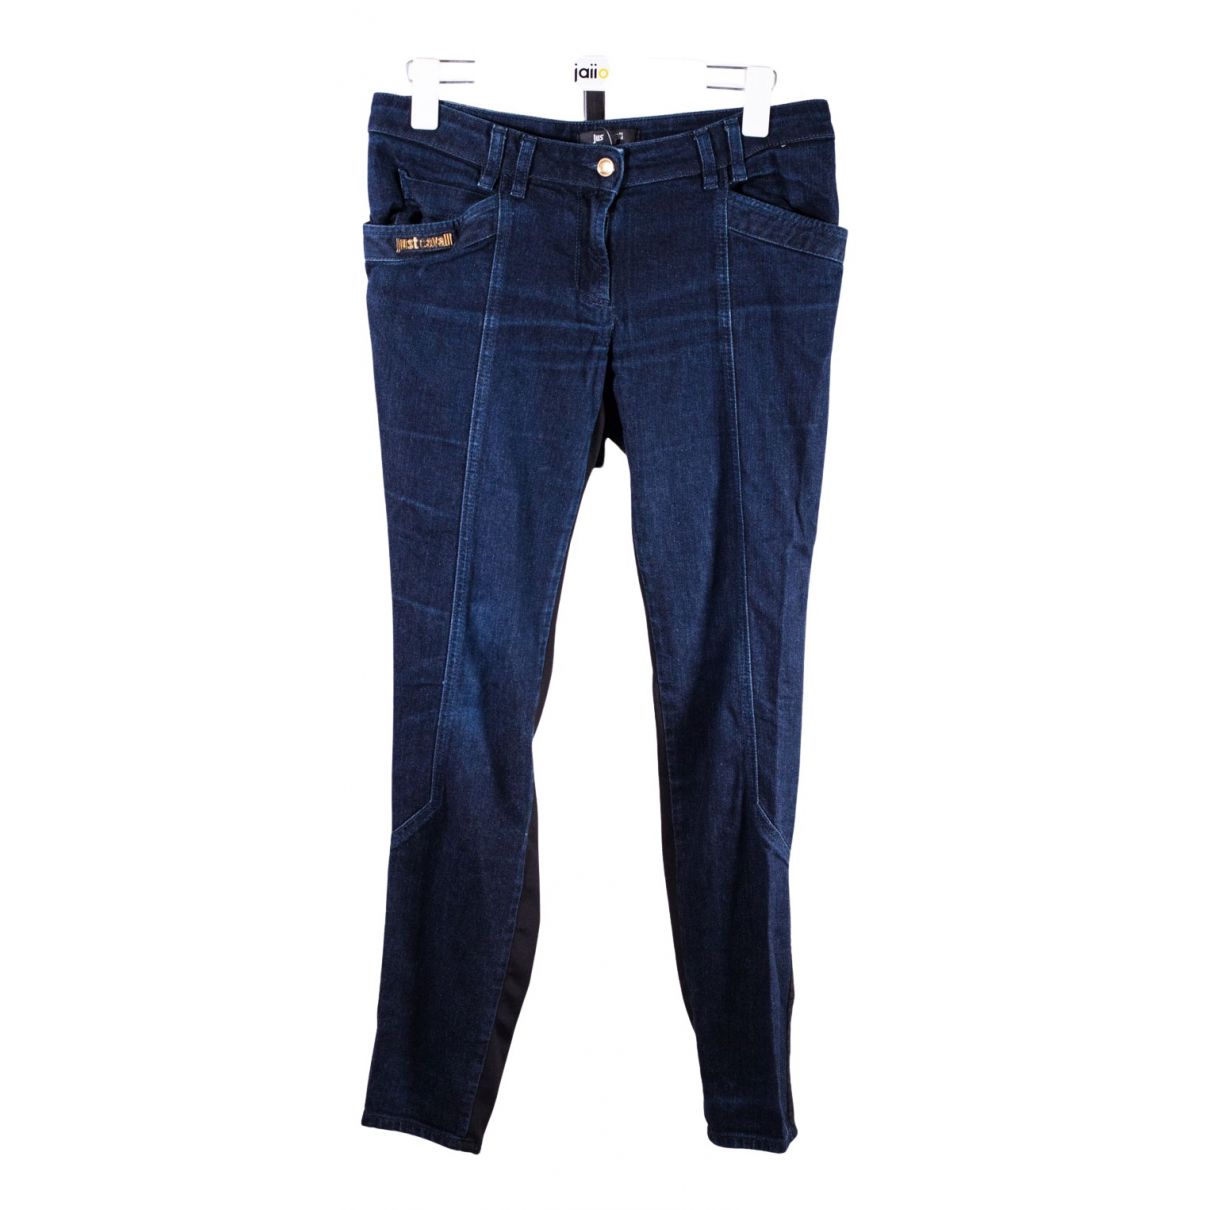 Just Cavalli N Blue Cotton Jeans for Women 40 FR